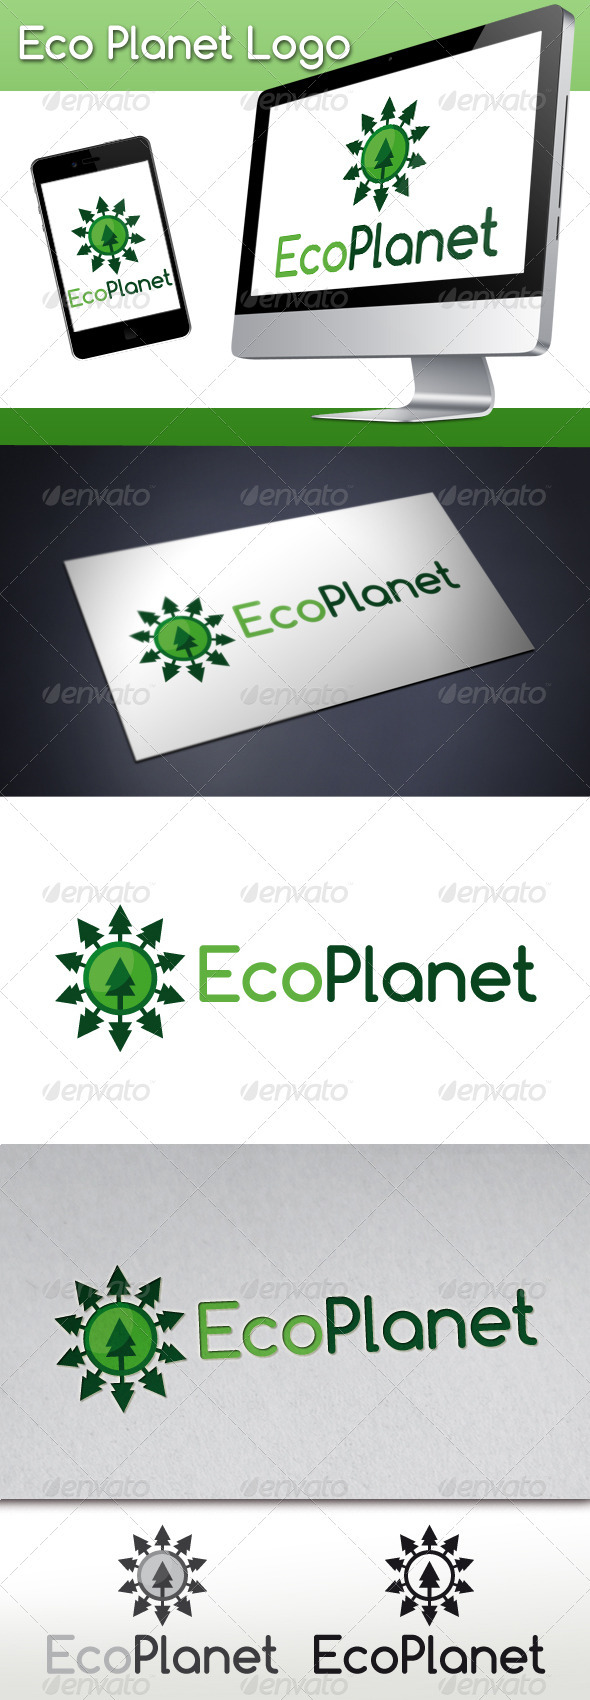 GraphicRiver Eco Planet Logo 3293172